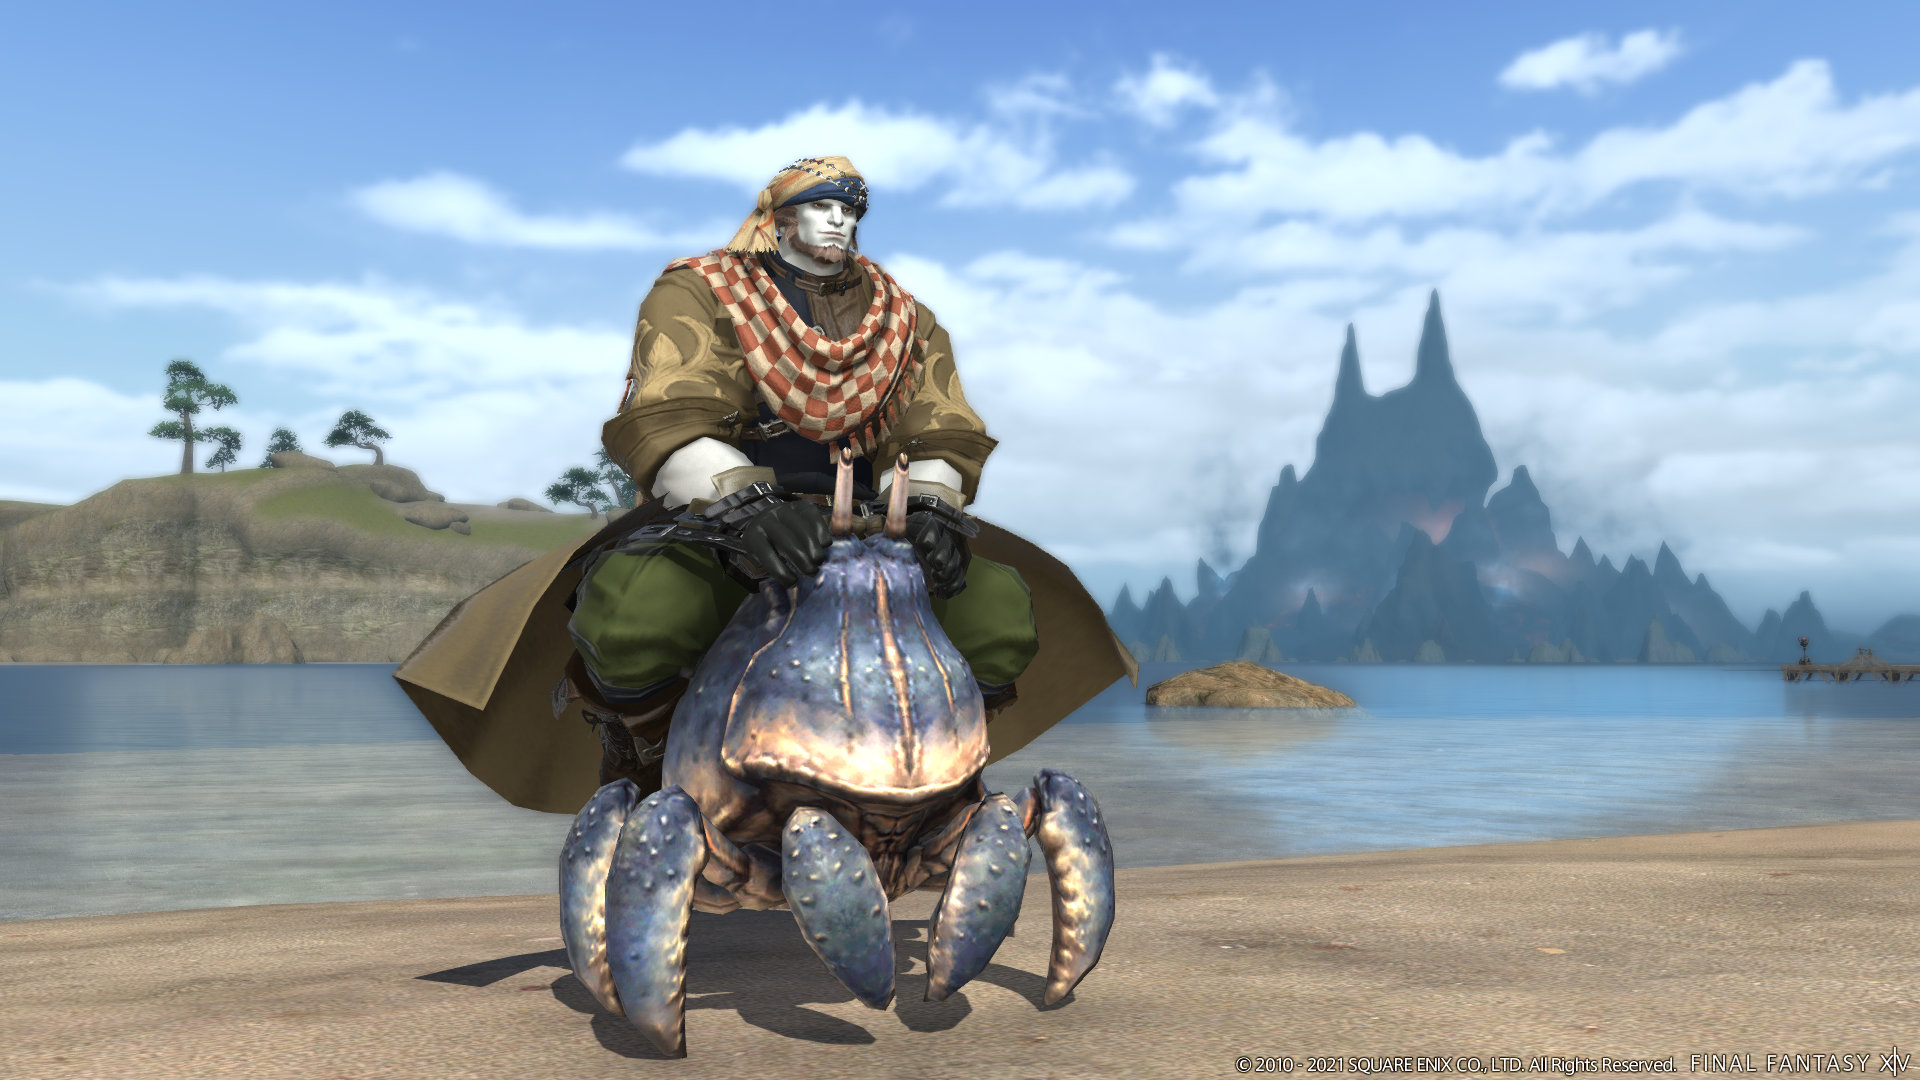 Screenshot From Final Fantasy XIV Shadowbringers Patch 5.41 Crab Mount RAVE